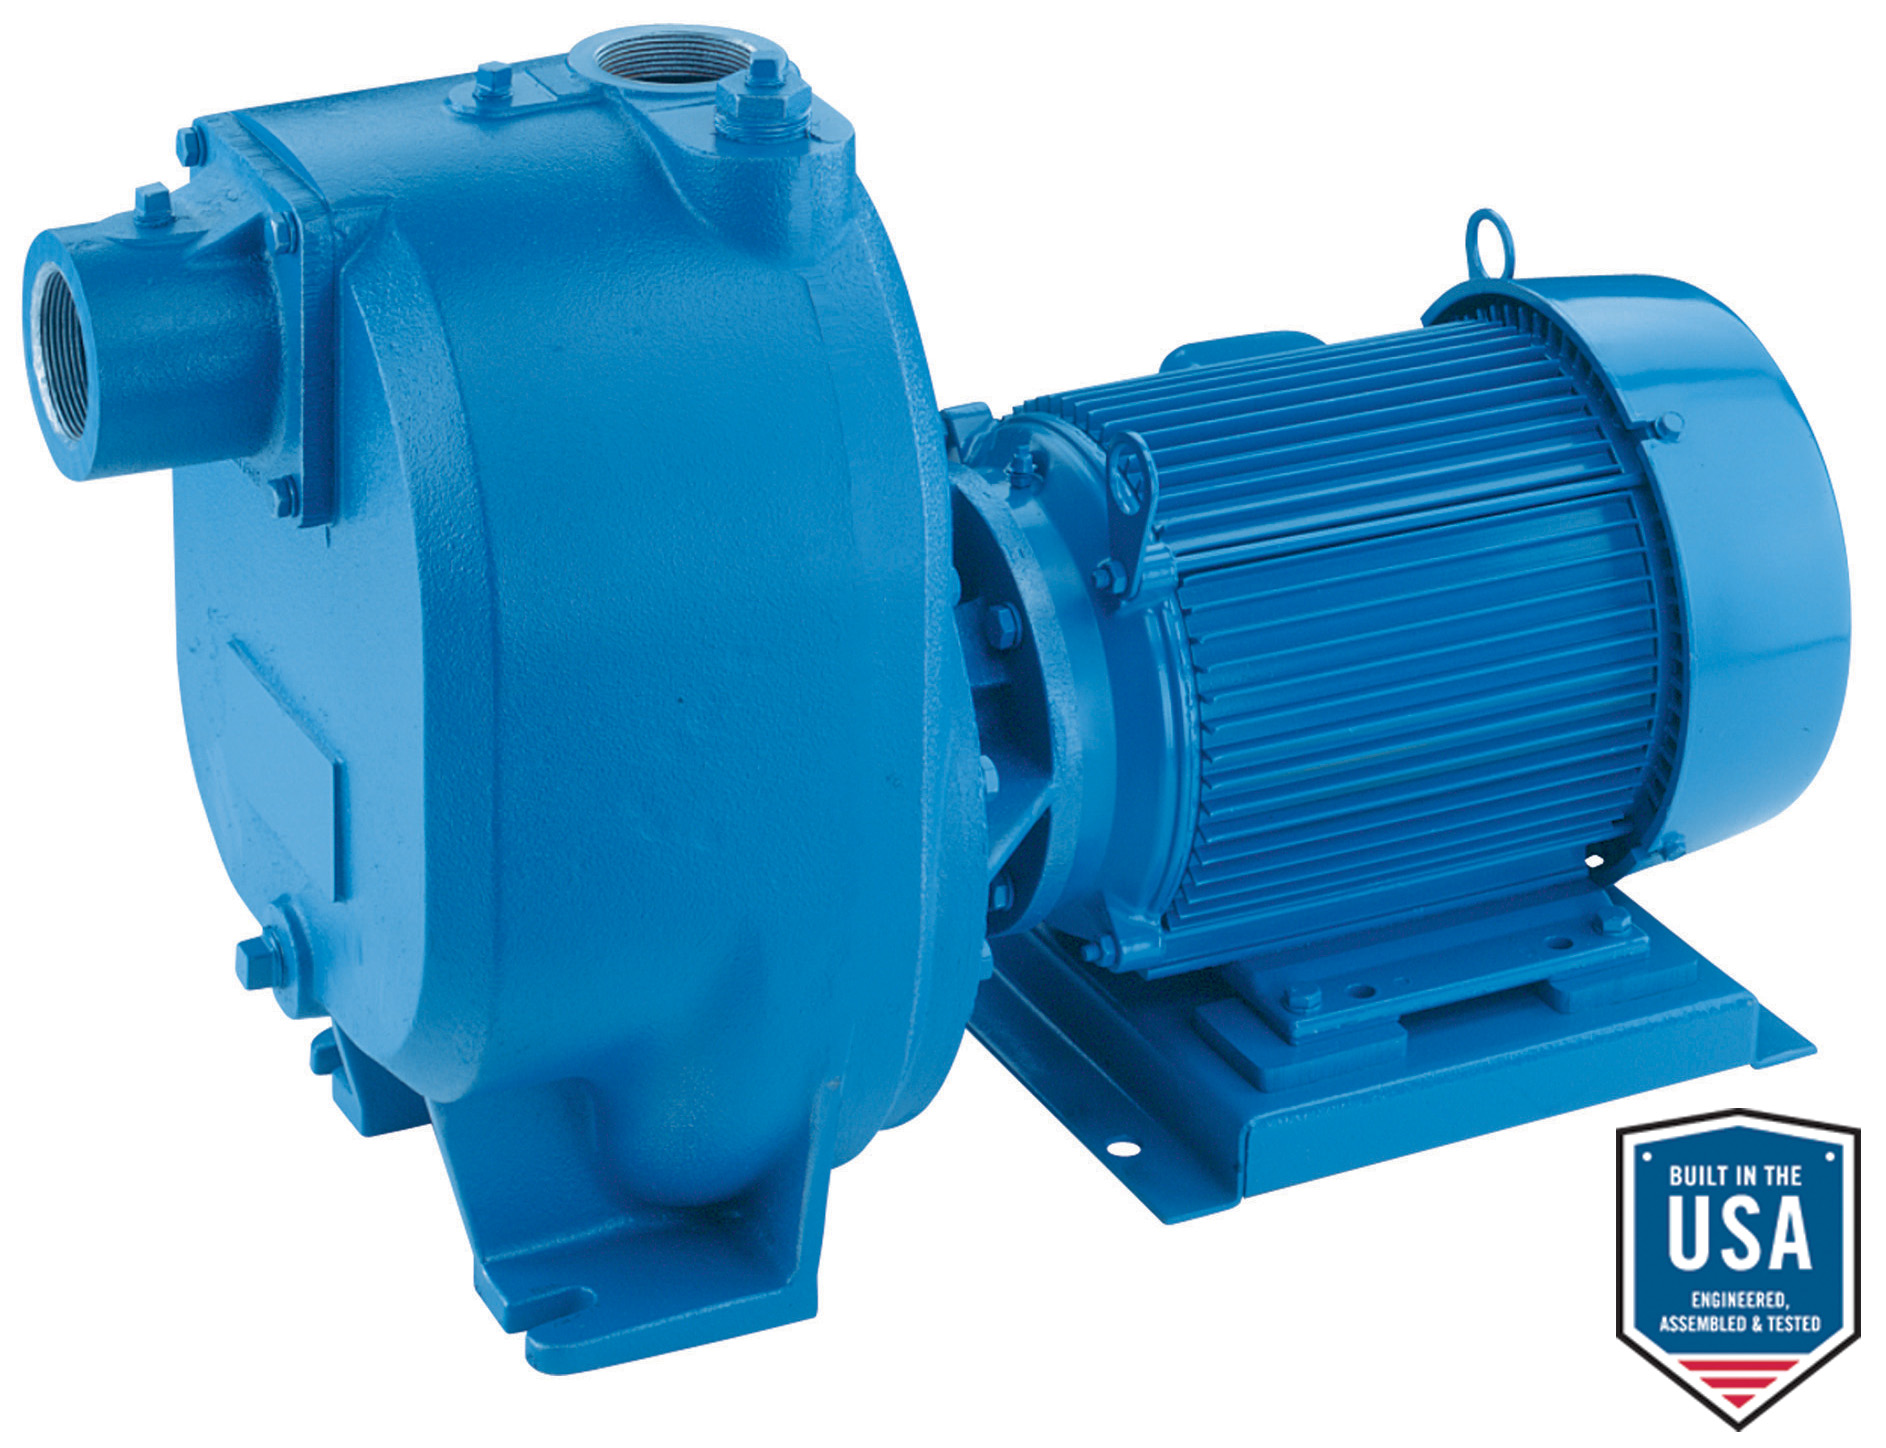 Marlow Series Prime Line Self-Priming Pumps